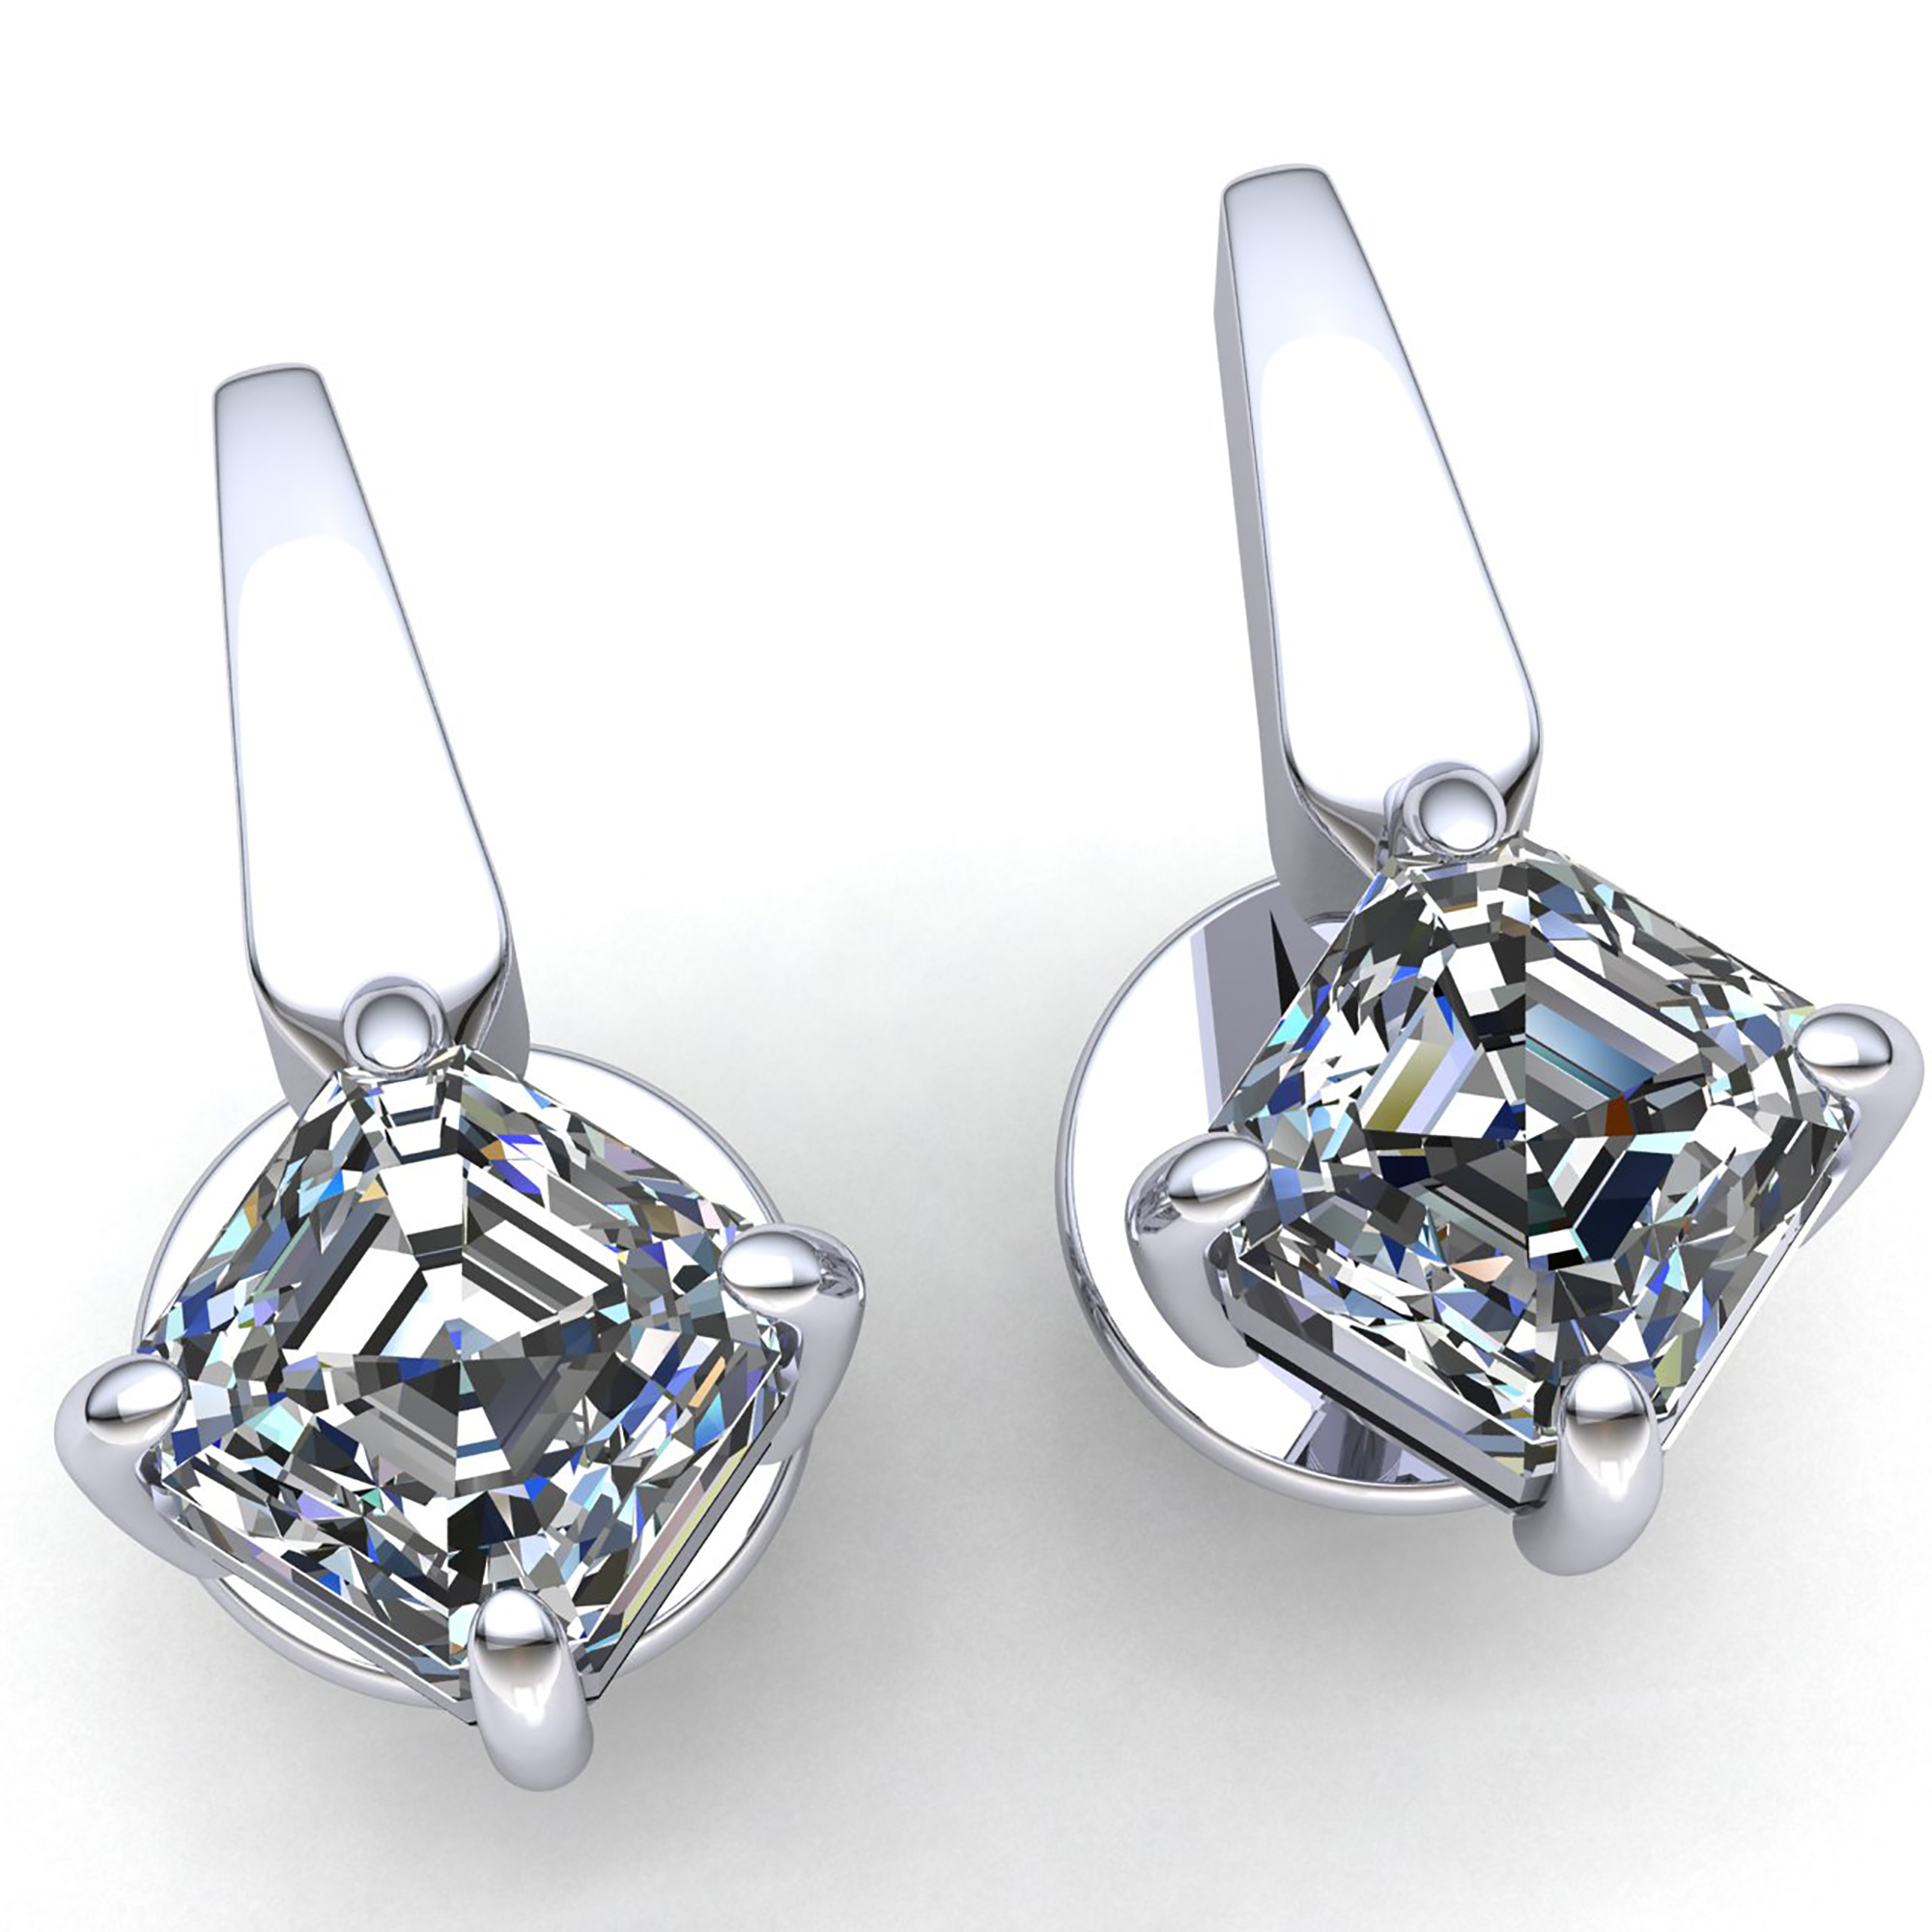 vel with solitaire zquez arrera diamond velazquez y earrings carrera product diamonds canada add yg